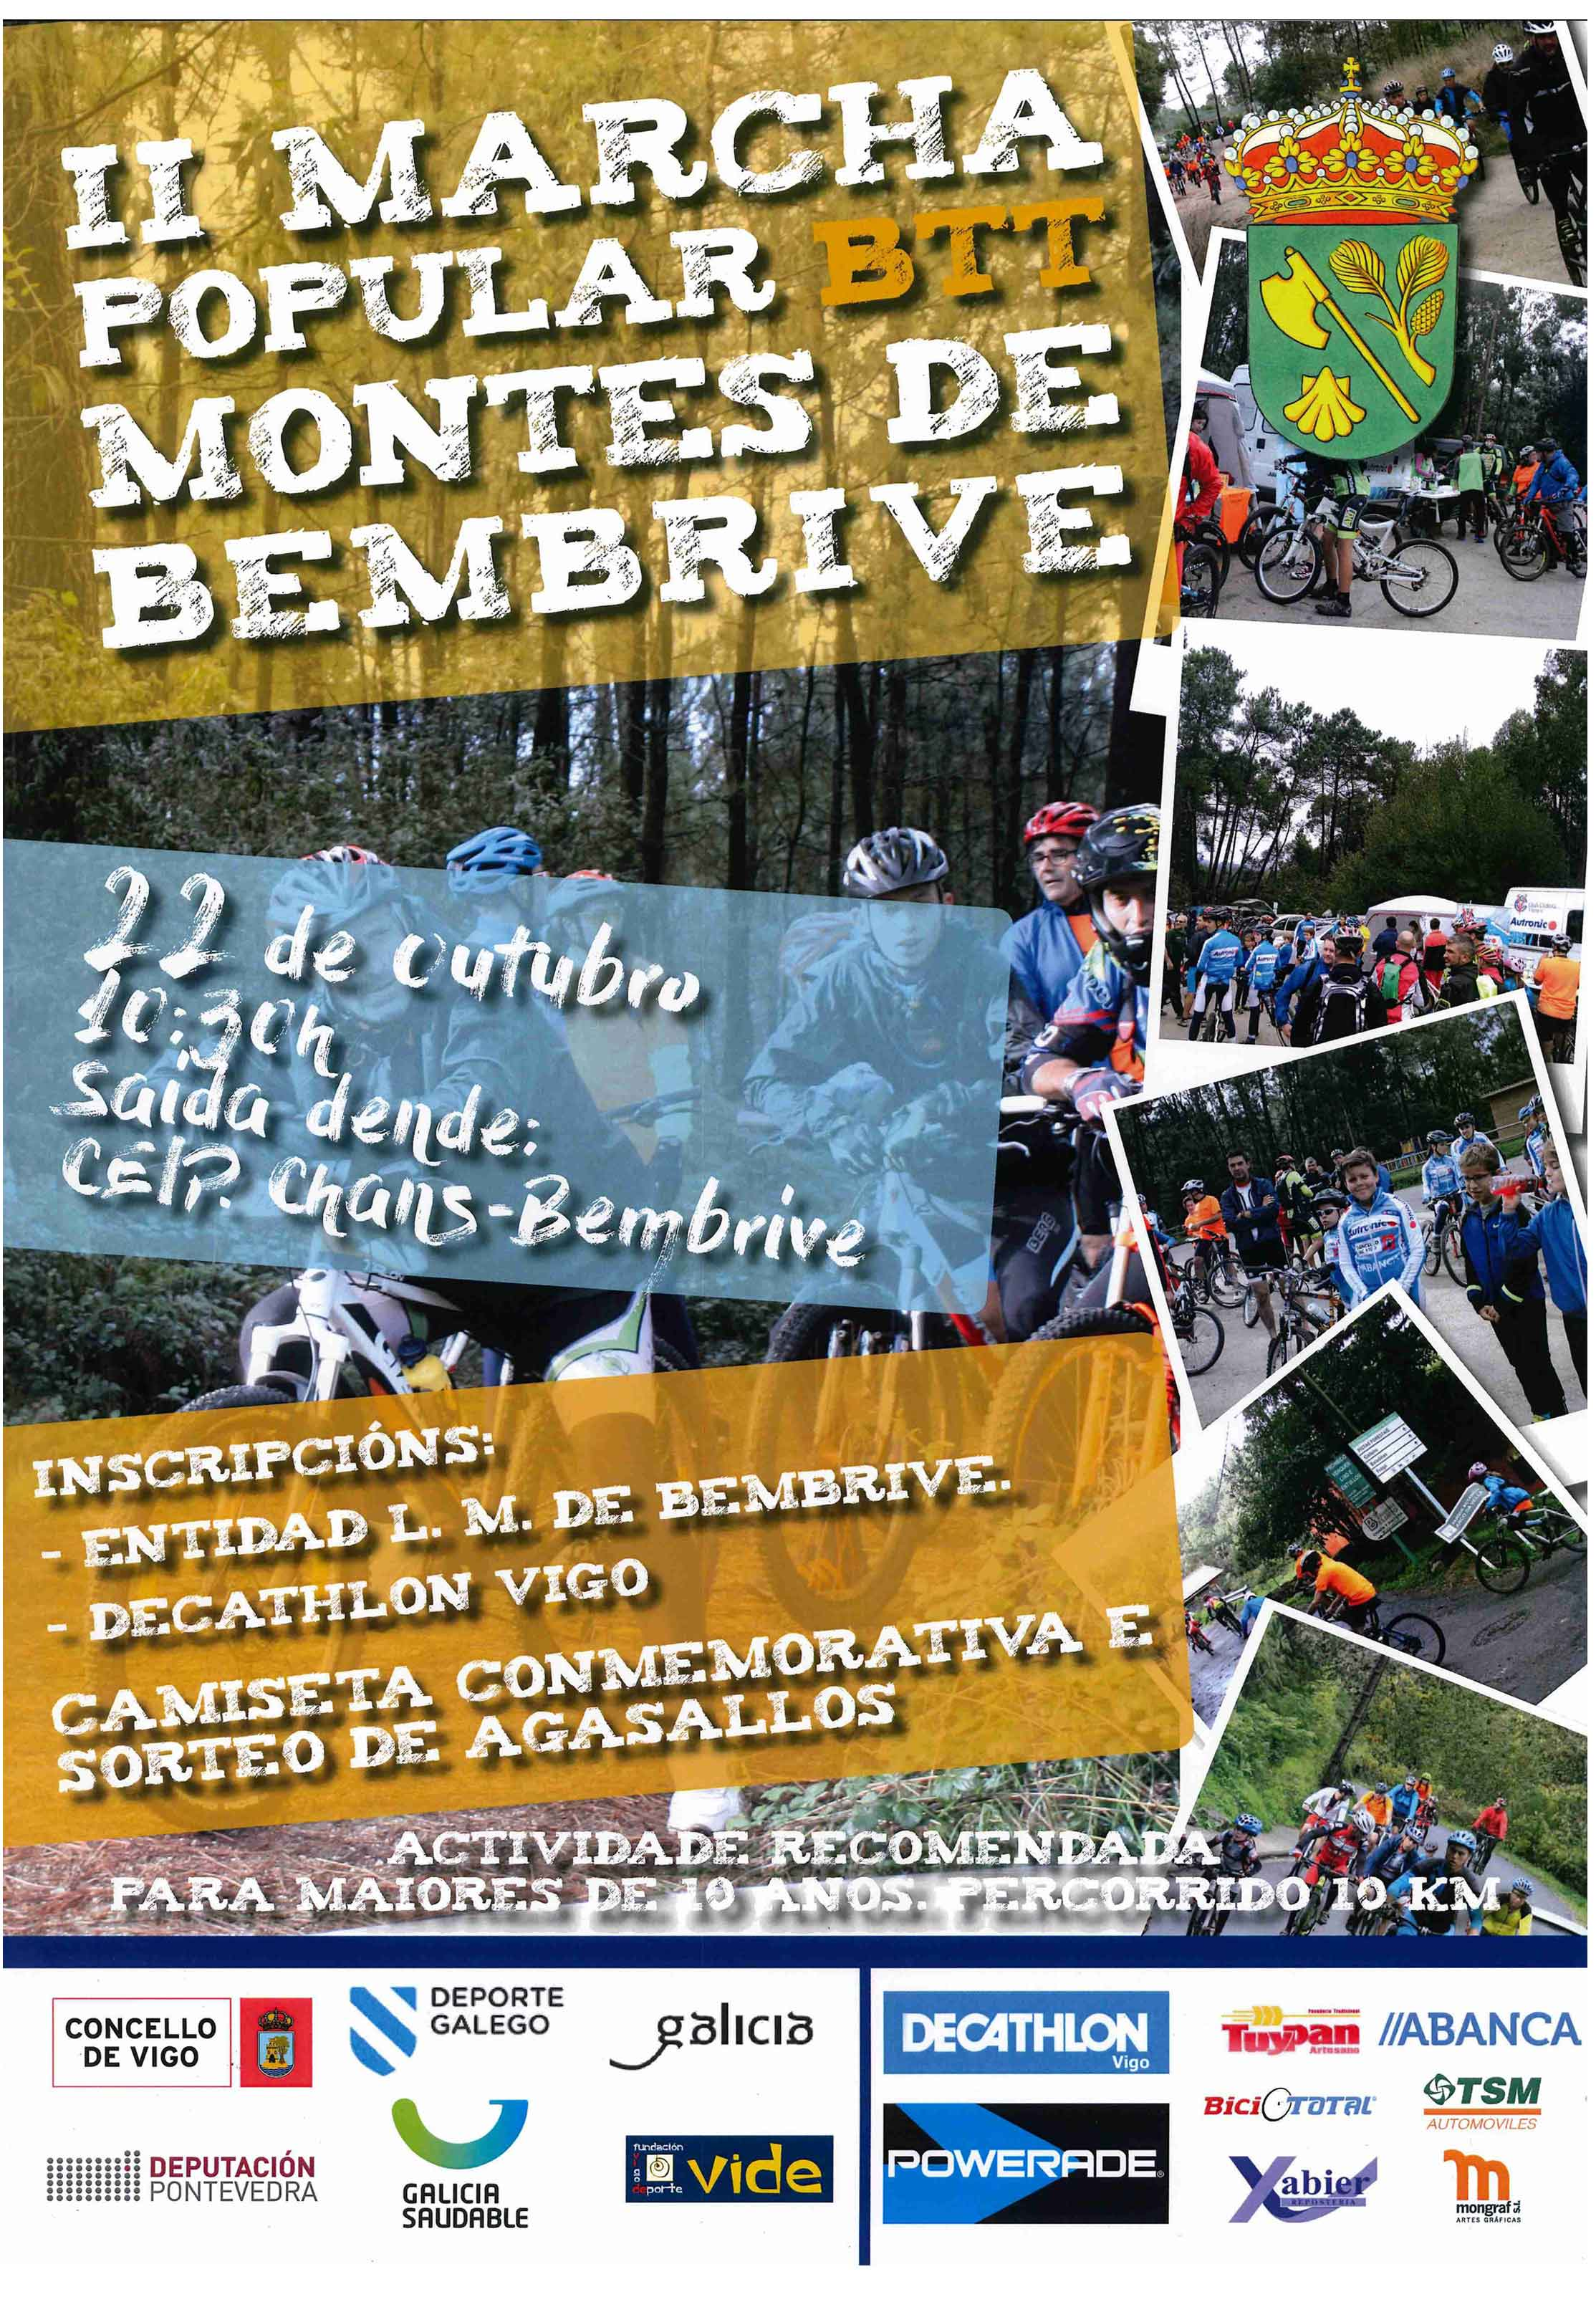 II-Marcha-Popular-BTT-Montes-de-Bembrive